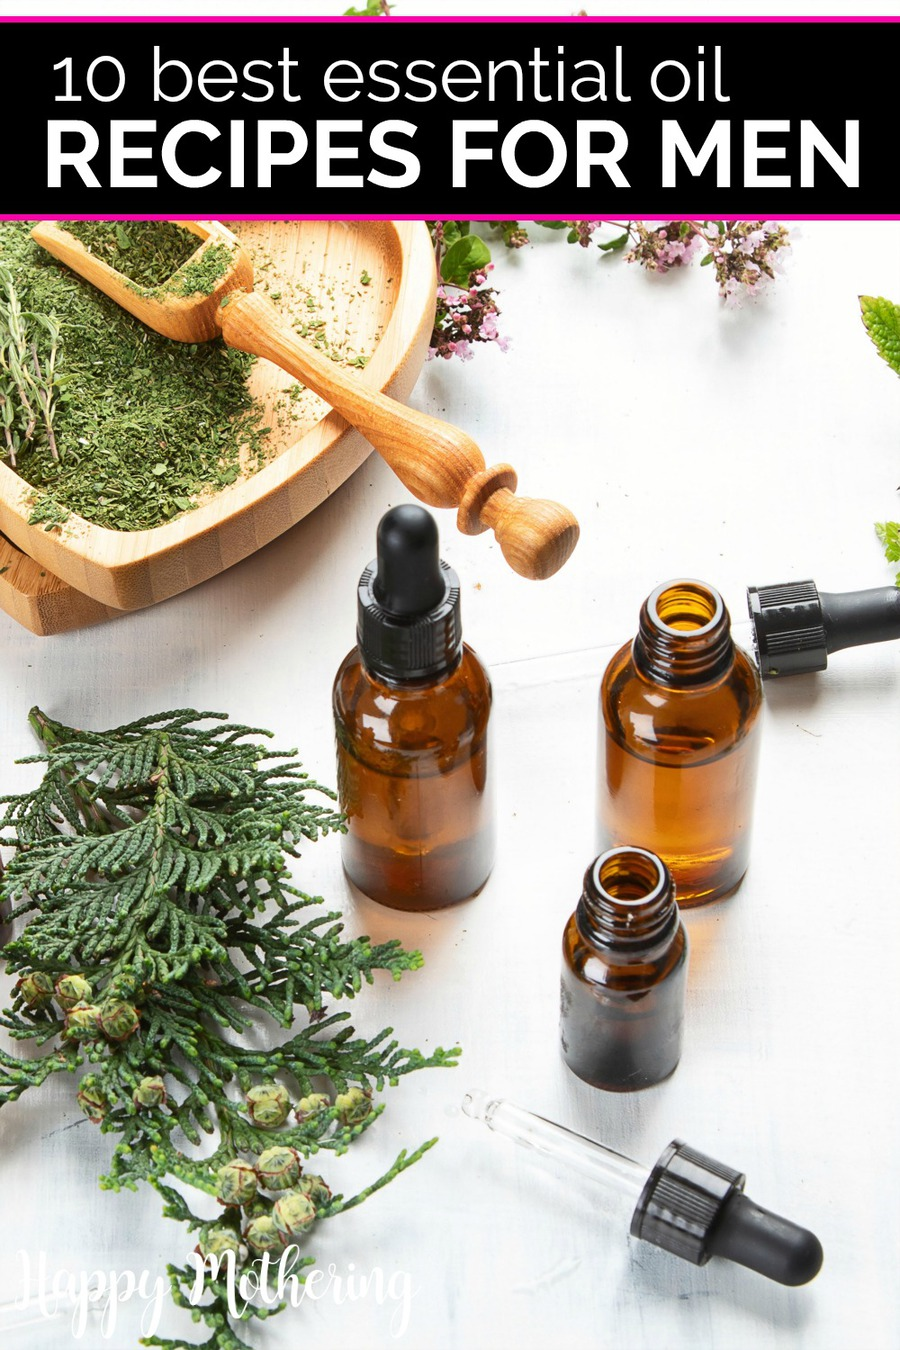 While women are posting all over social media about essential oils, there are plenty of ways for men to use them too. Learn how to make the 10 best essential oil recipes for men in one place!